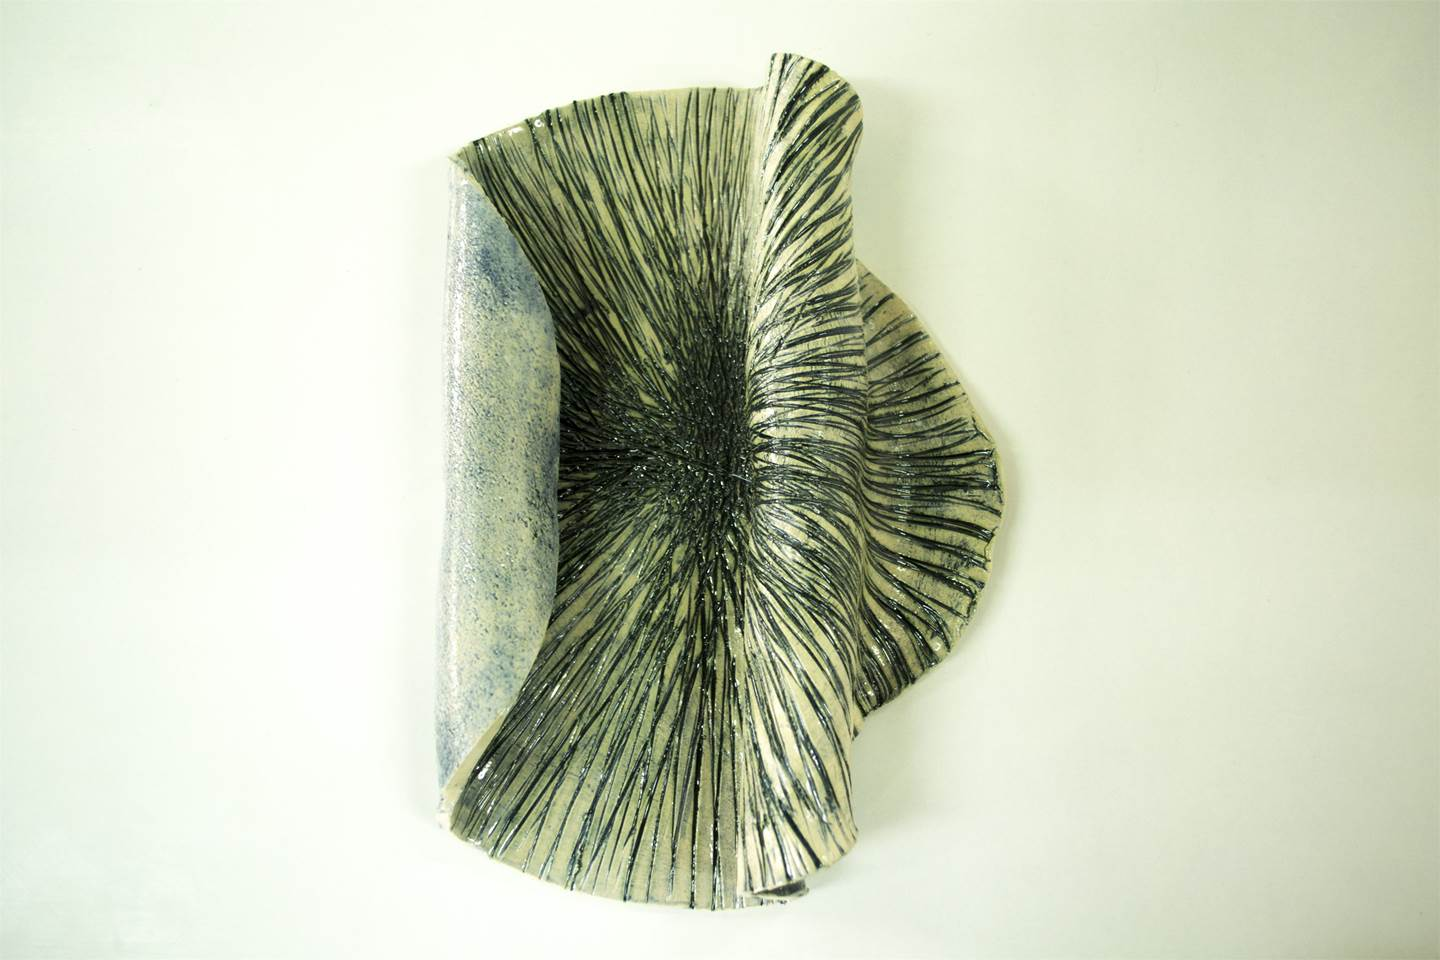 Tágide (colour 7), original Abstract Ceramic Sculpture by Ana Almeida Pinto